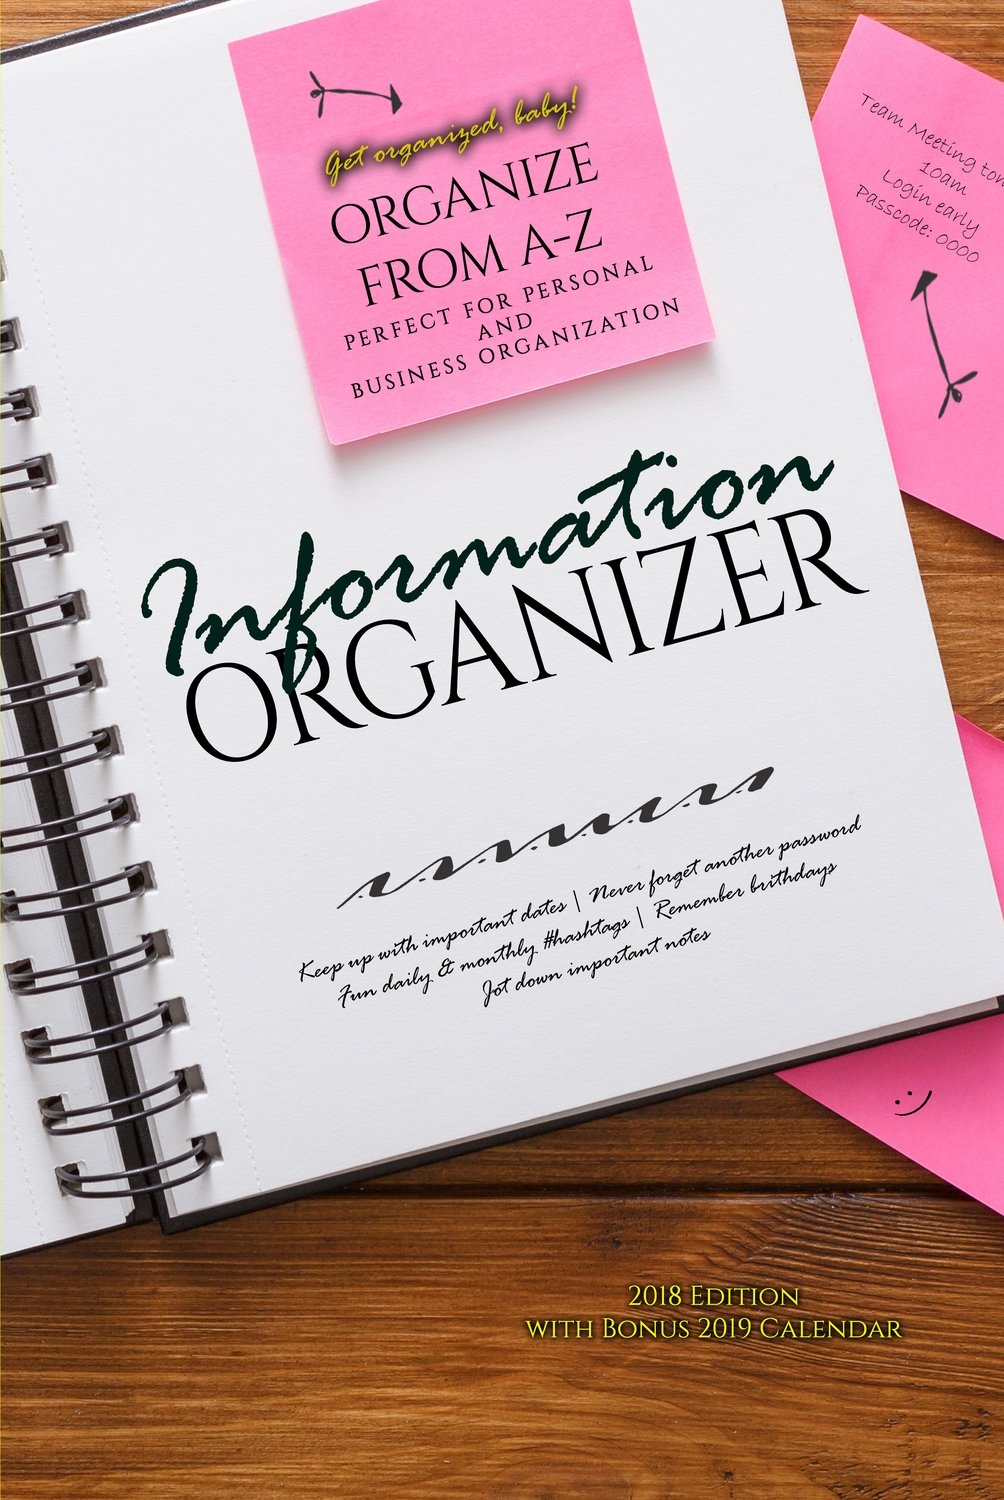 Information Organizer - Organize from A-Z